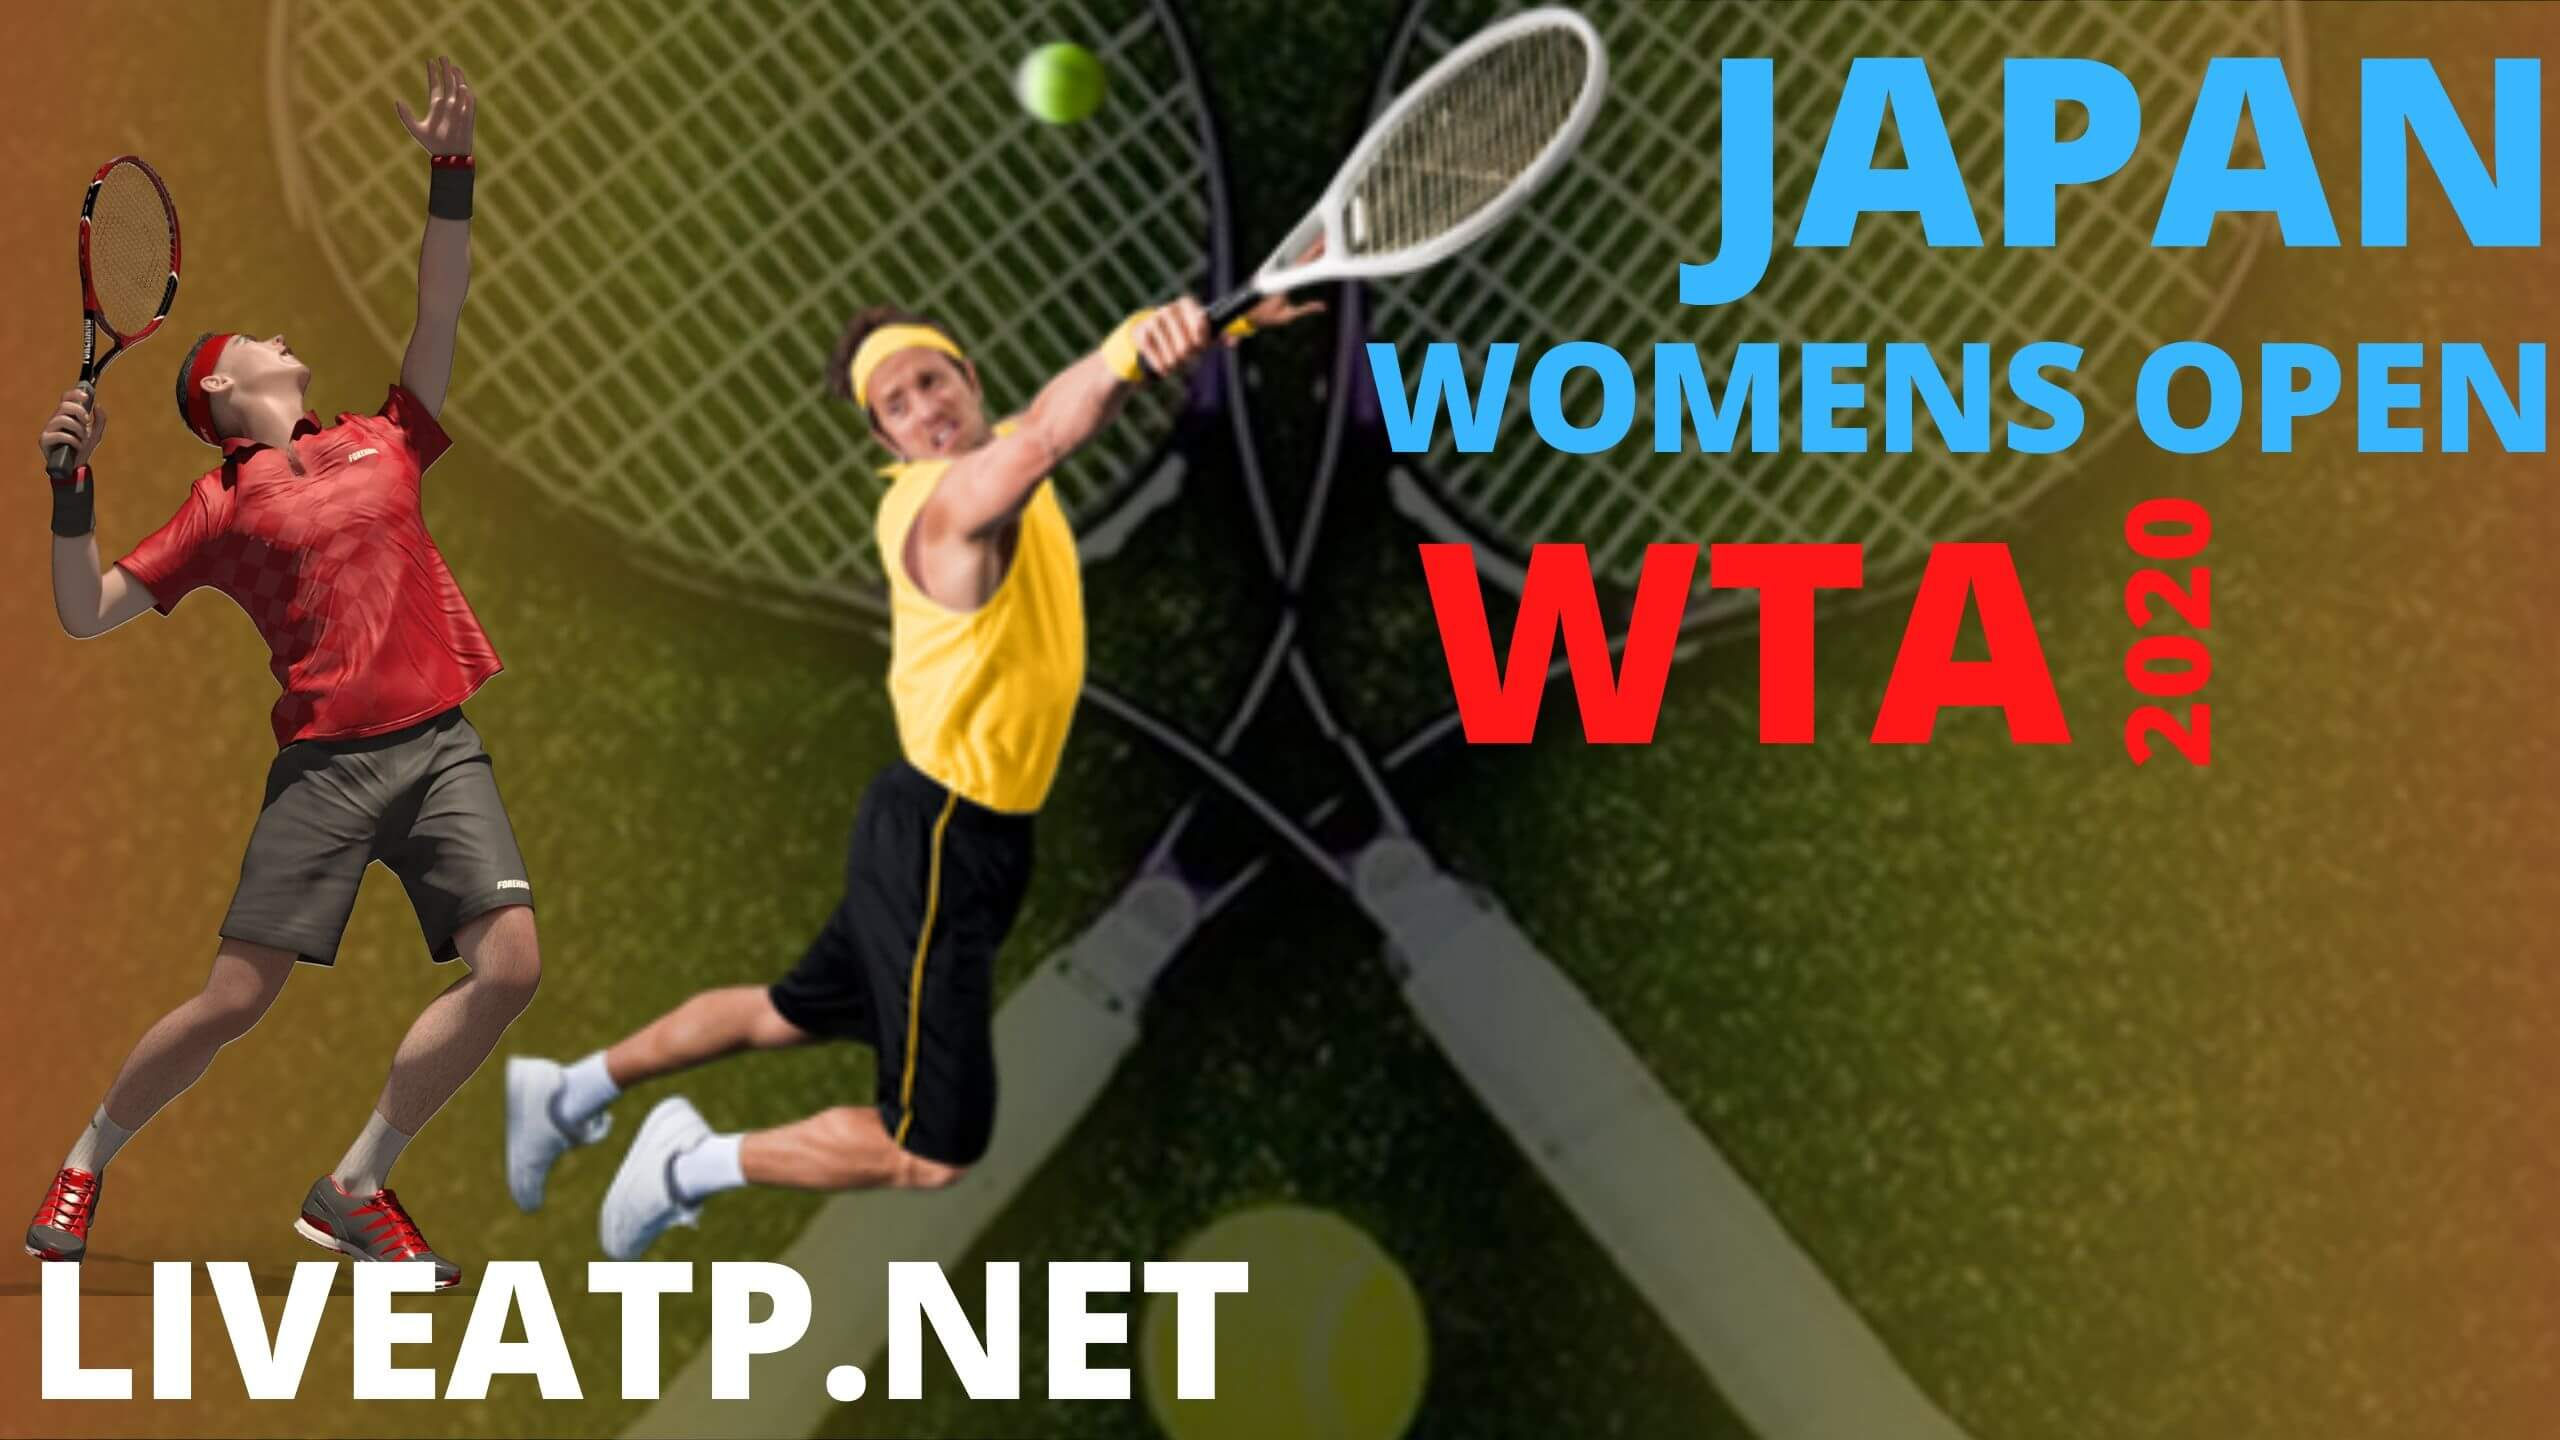 Japan Womens Open Live Stream 2020 | Final